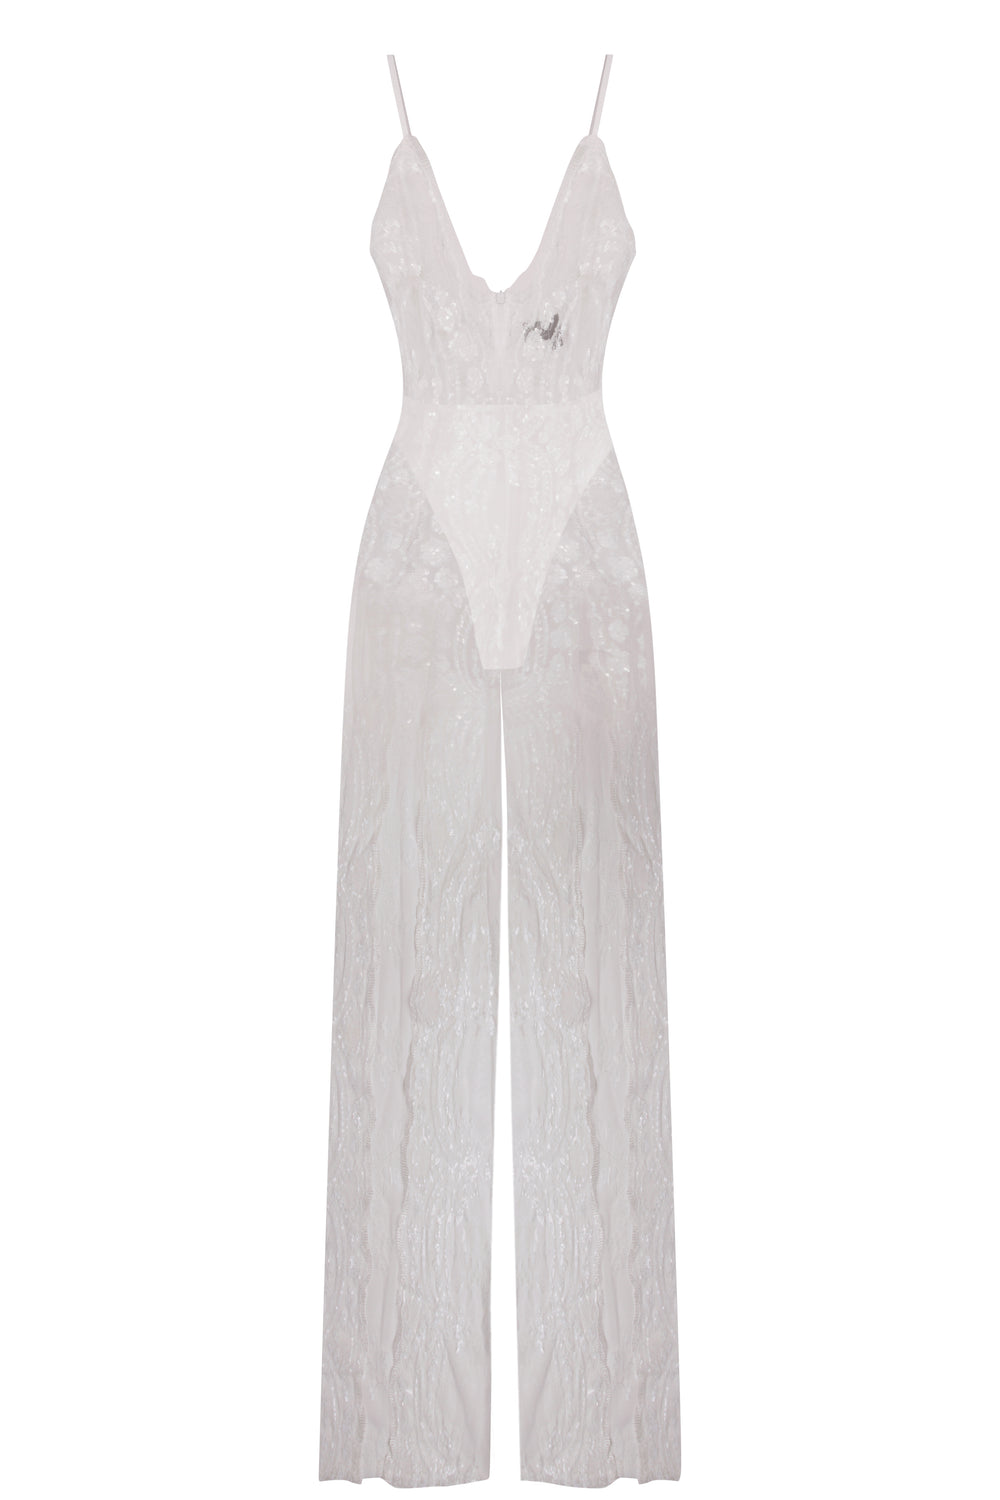 Game Changer White Sheer Floral Sequin Palazzo Split Jumpsuit